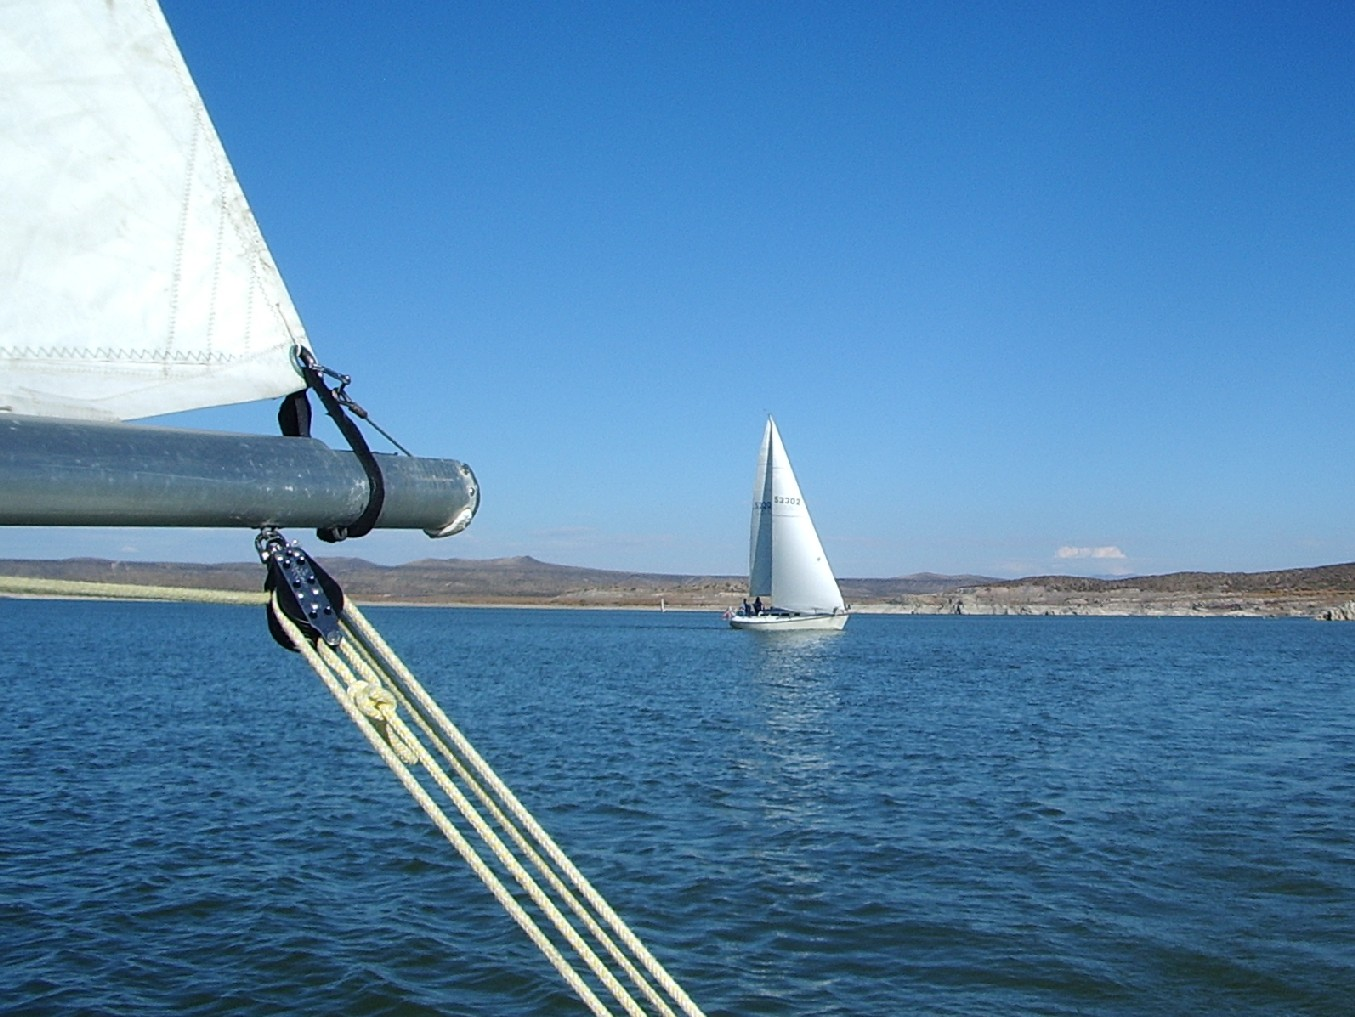 Desert Sea - New Mexico and Southwestern Sailing: Solo sail